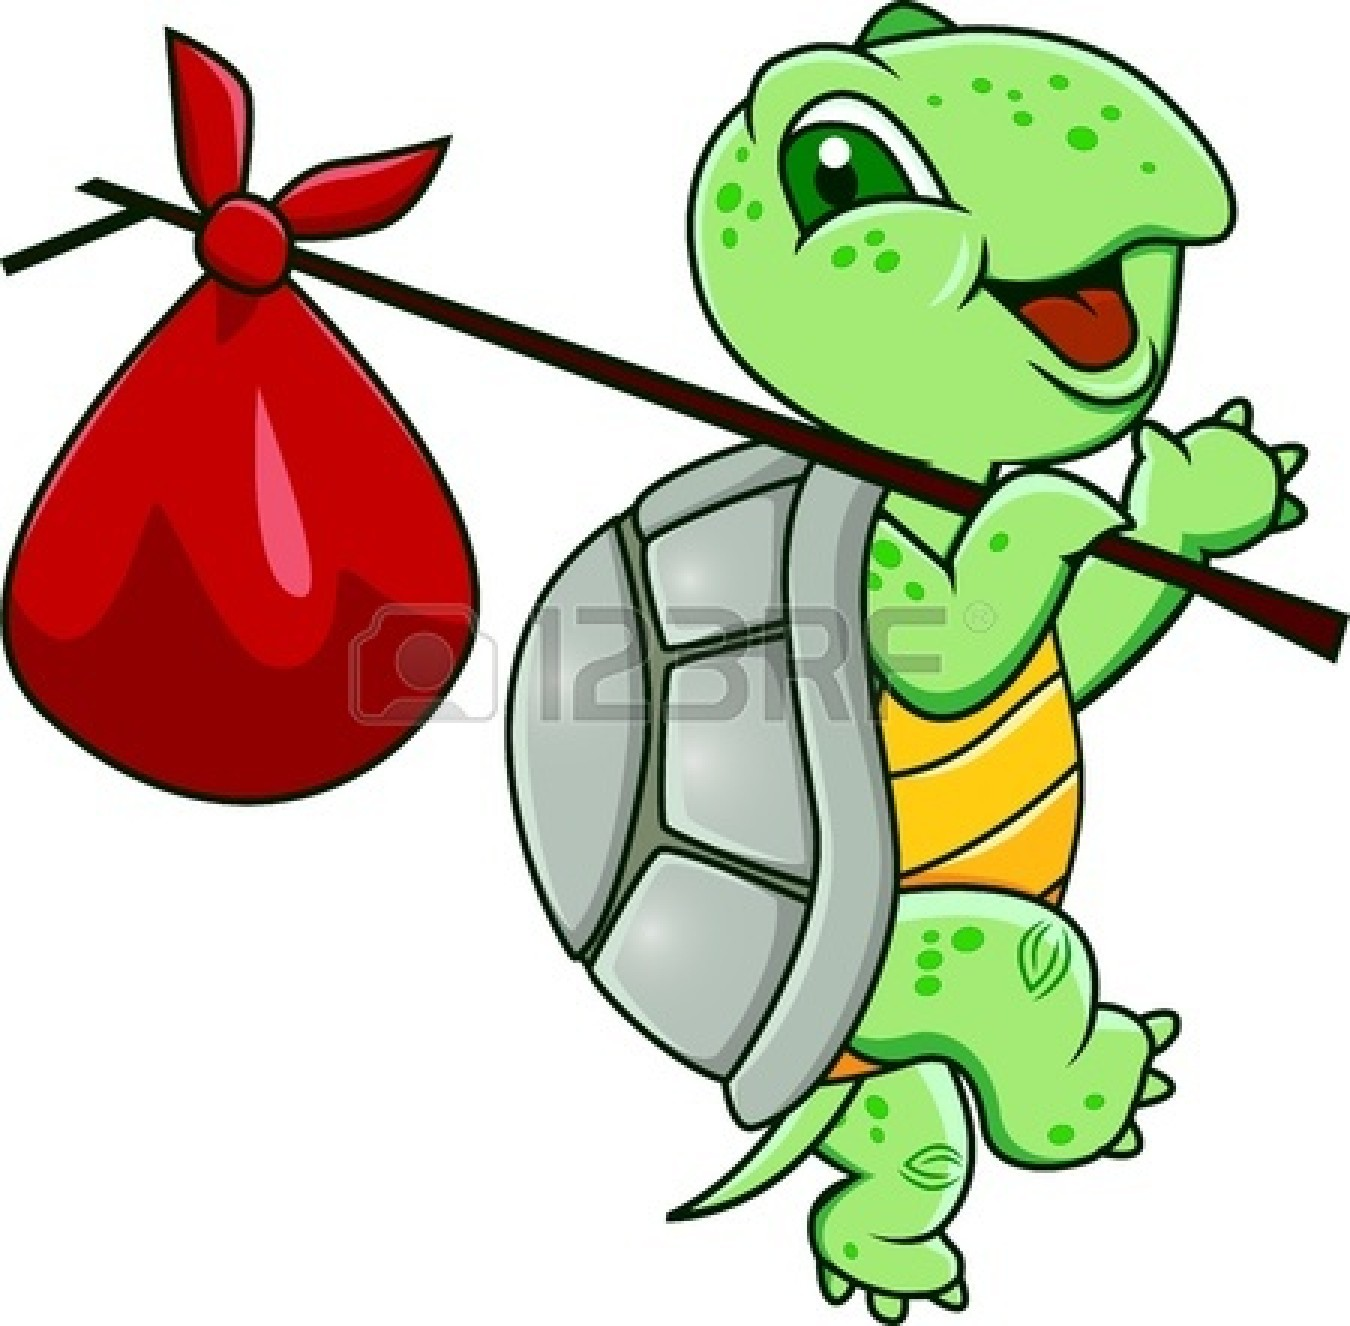 Turtle clipart silly #8